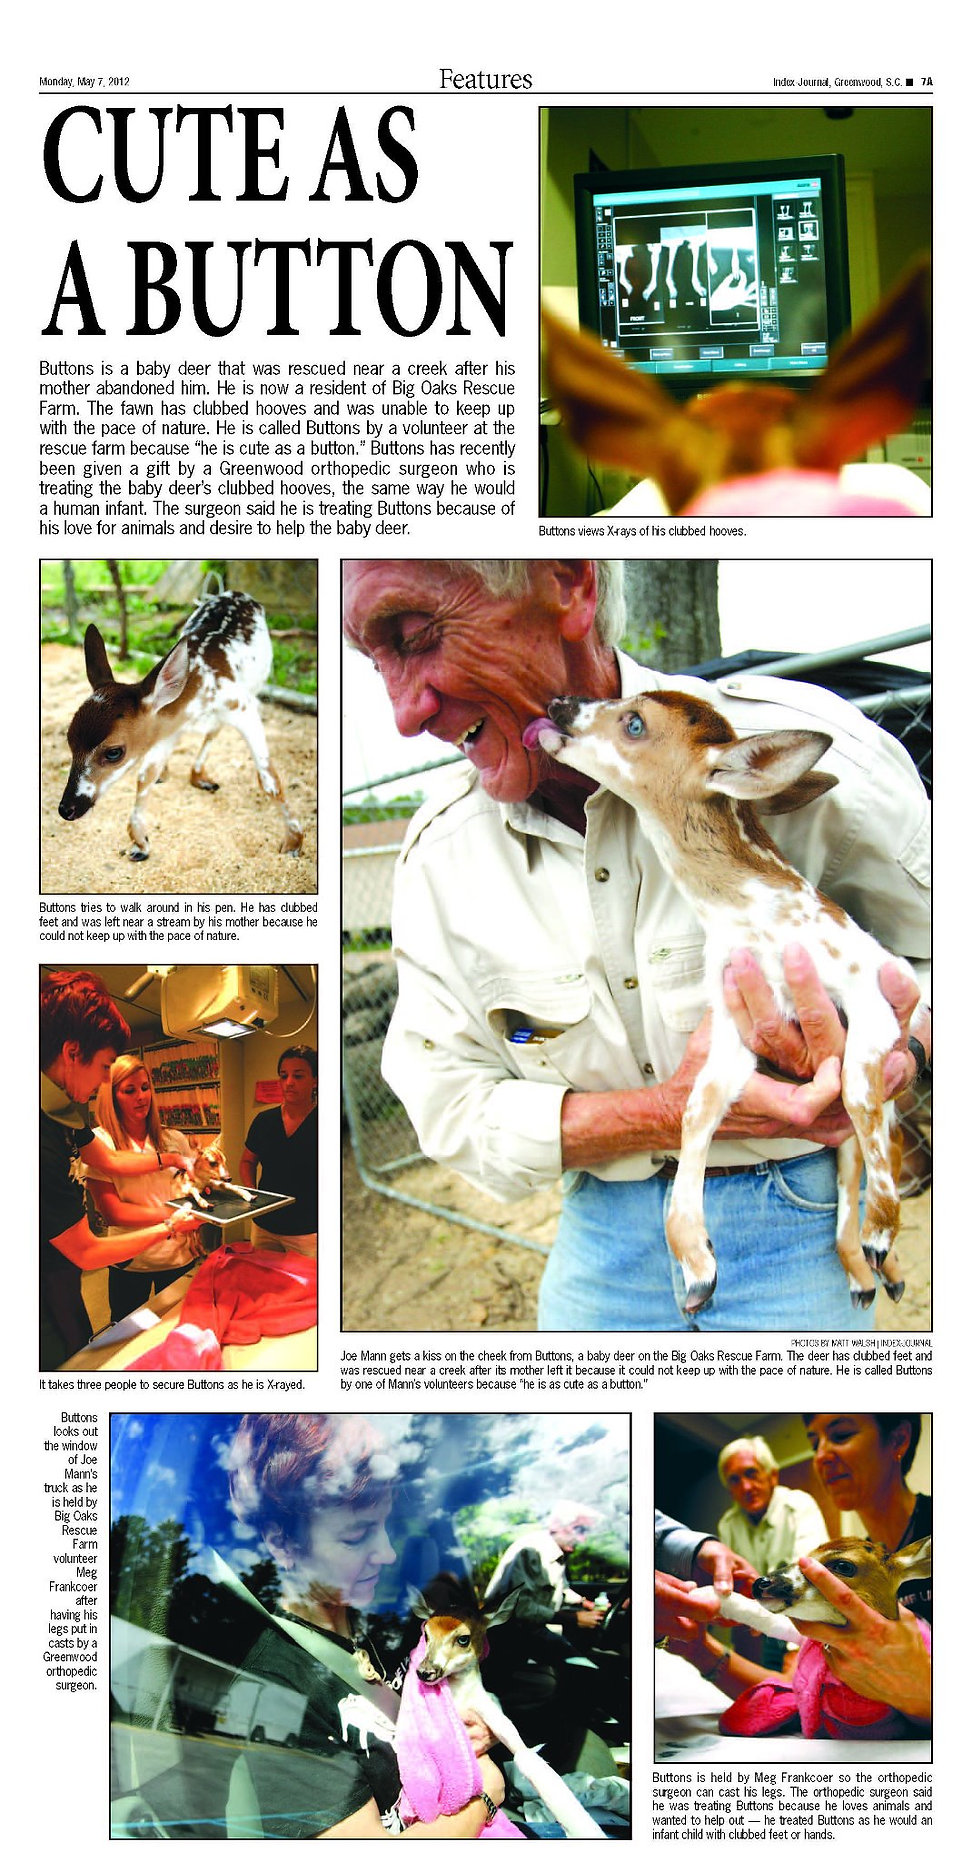 Big Oaks Farm News: The rescue of Buttons a fawn, abandoned by his mother and now resident at Big Oaks Rescue Farm